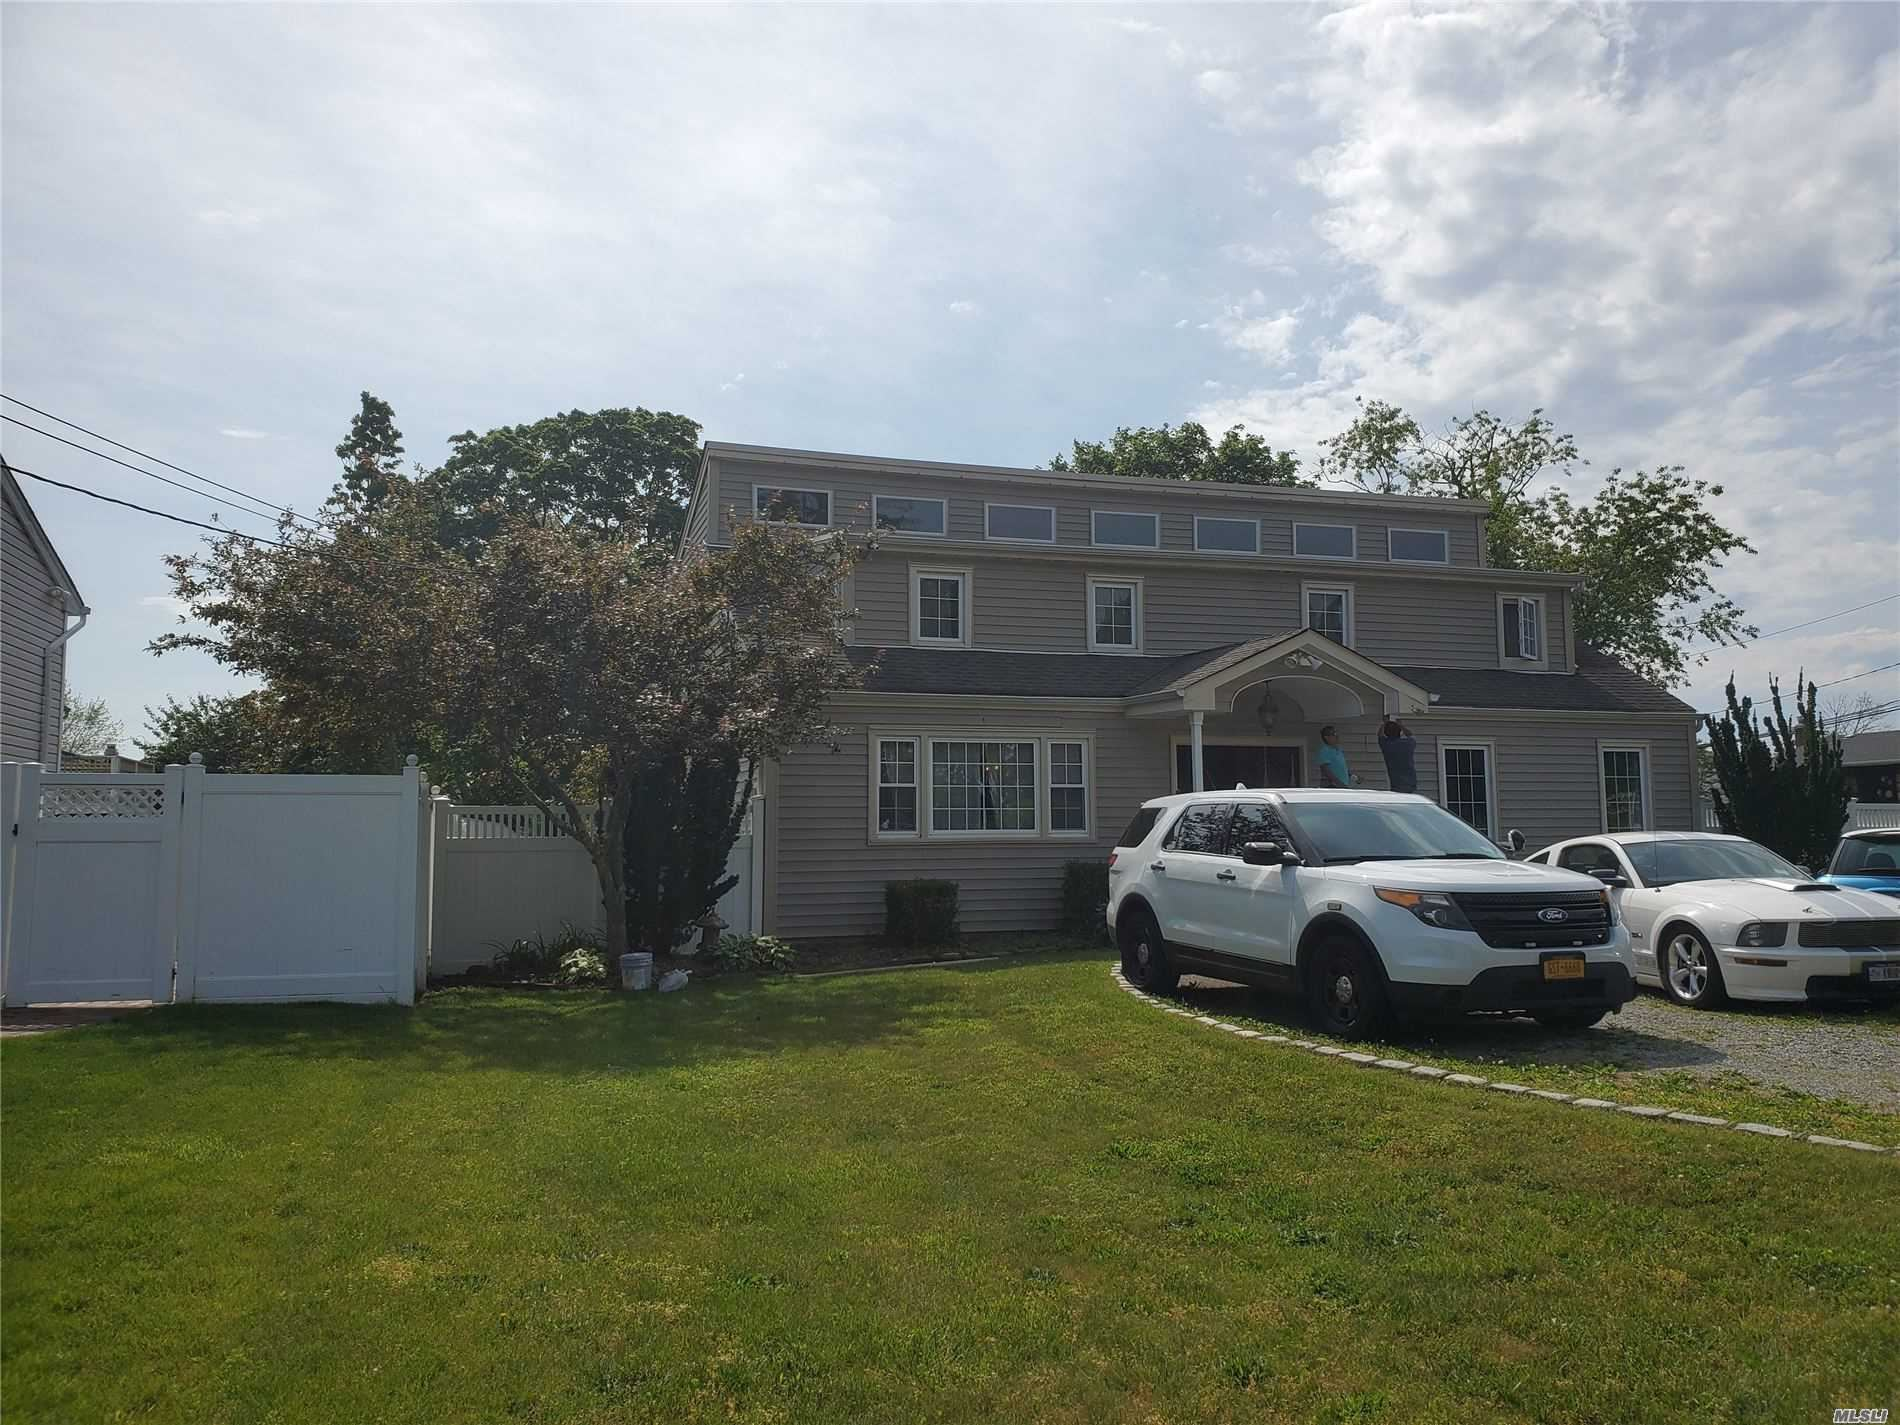 39 Carman Blvd, Massapequa, NY 11758 - MLS#: 3219870